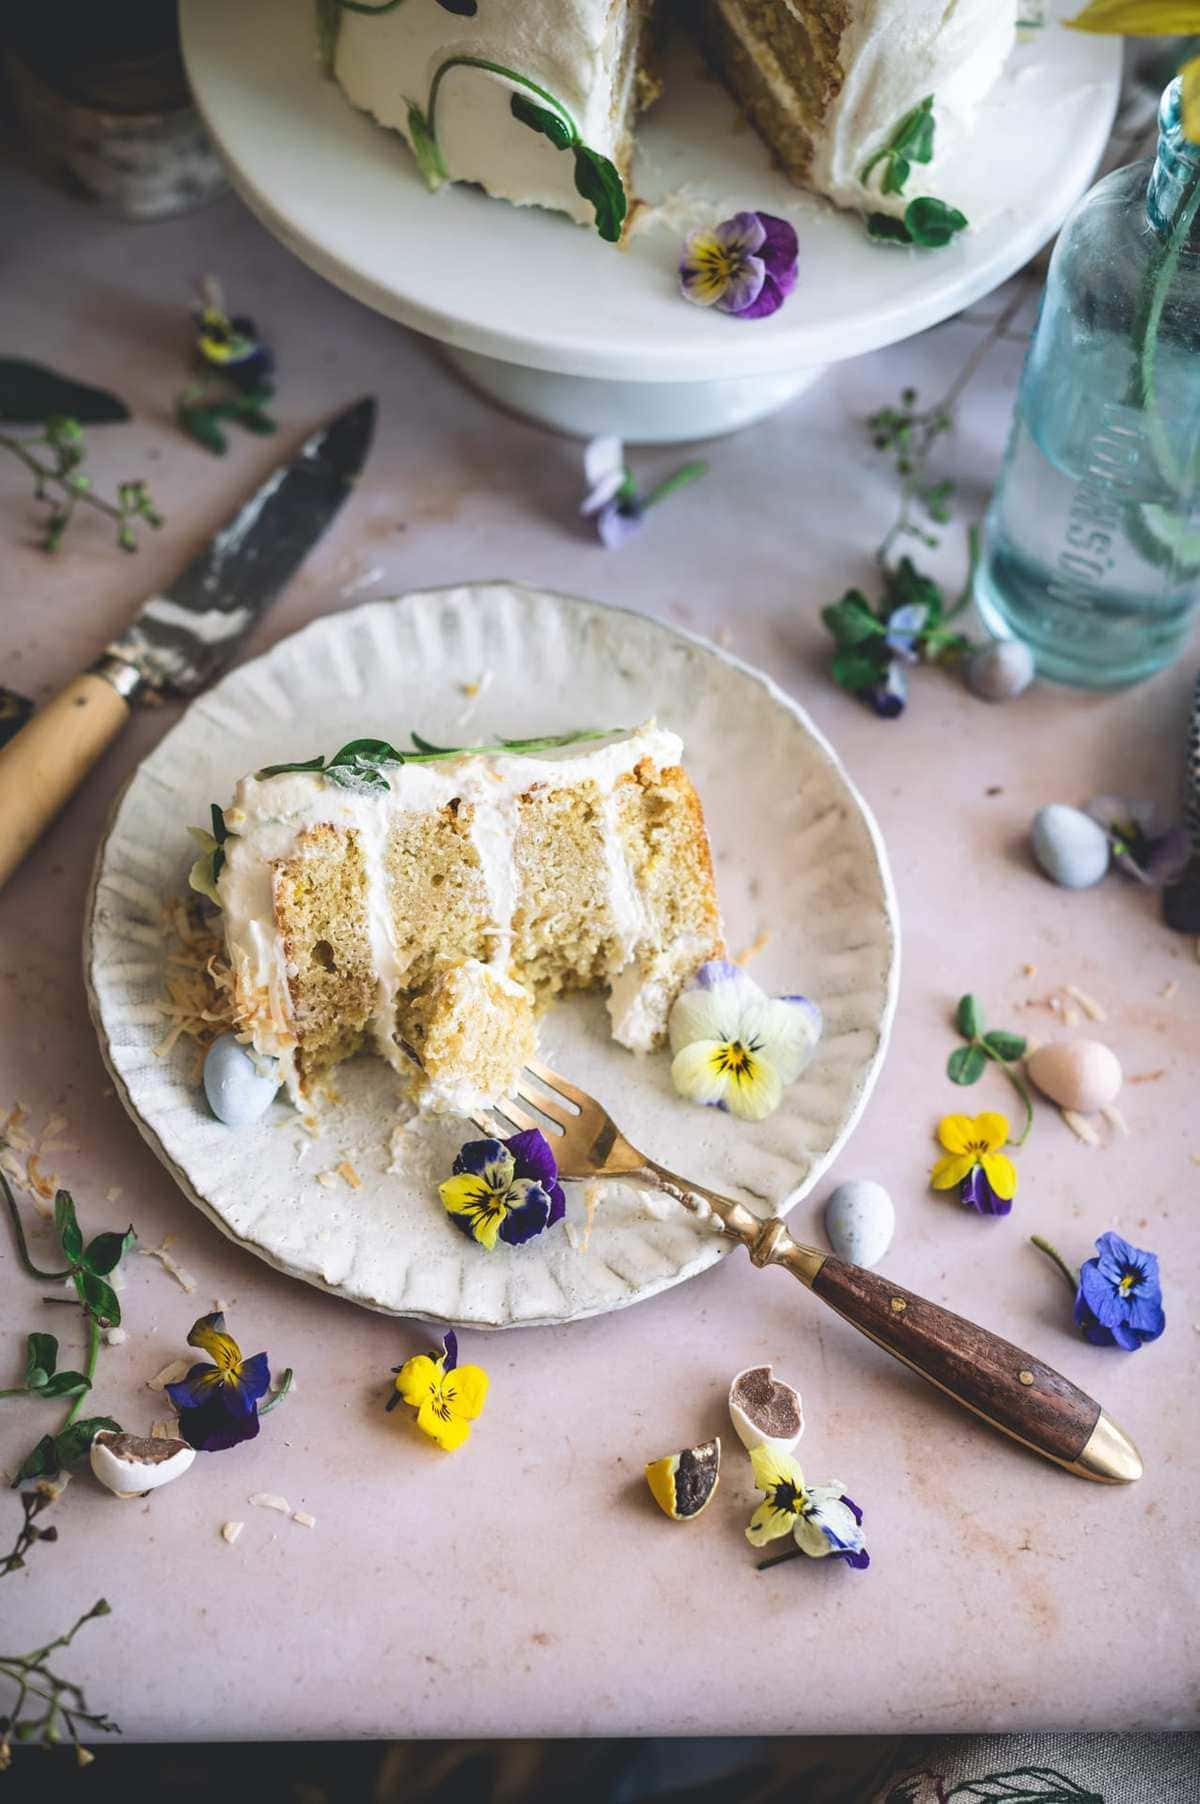 Lemon Coconut Cake with Cream Cheese Frosting